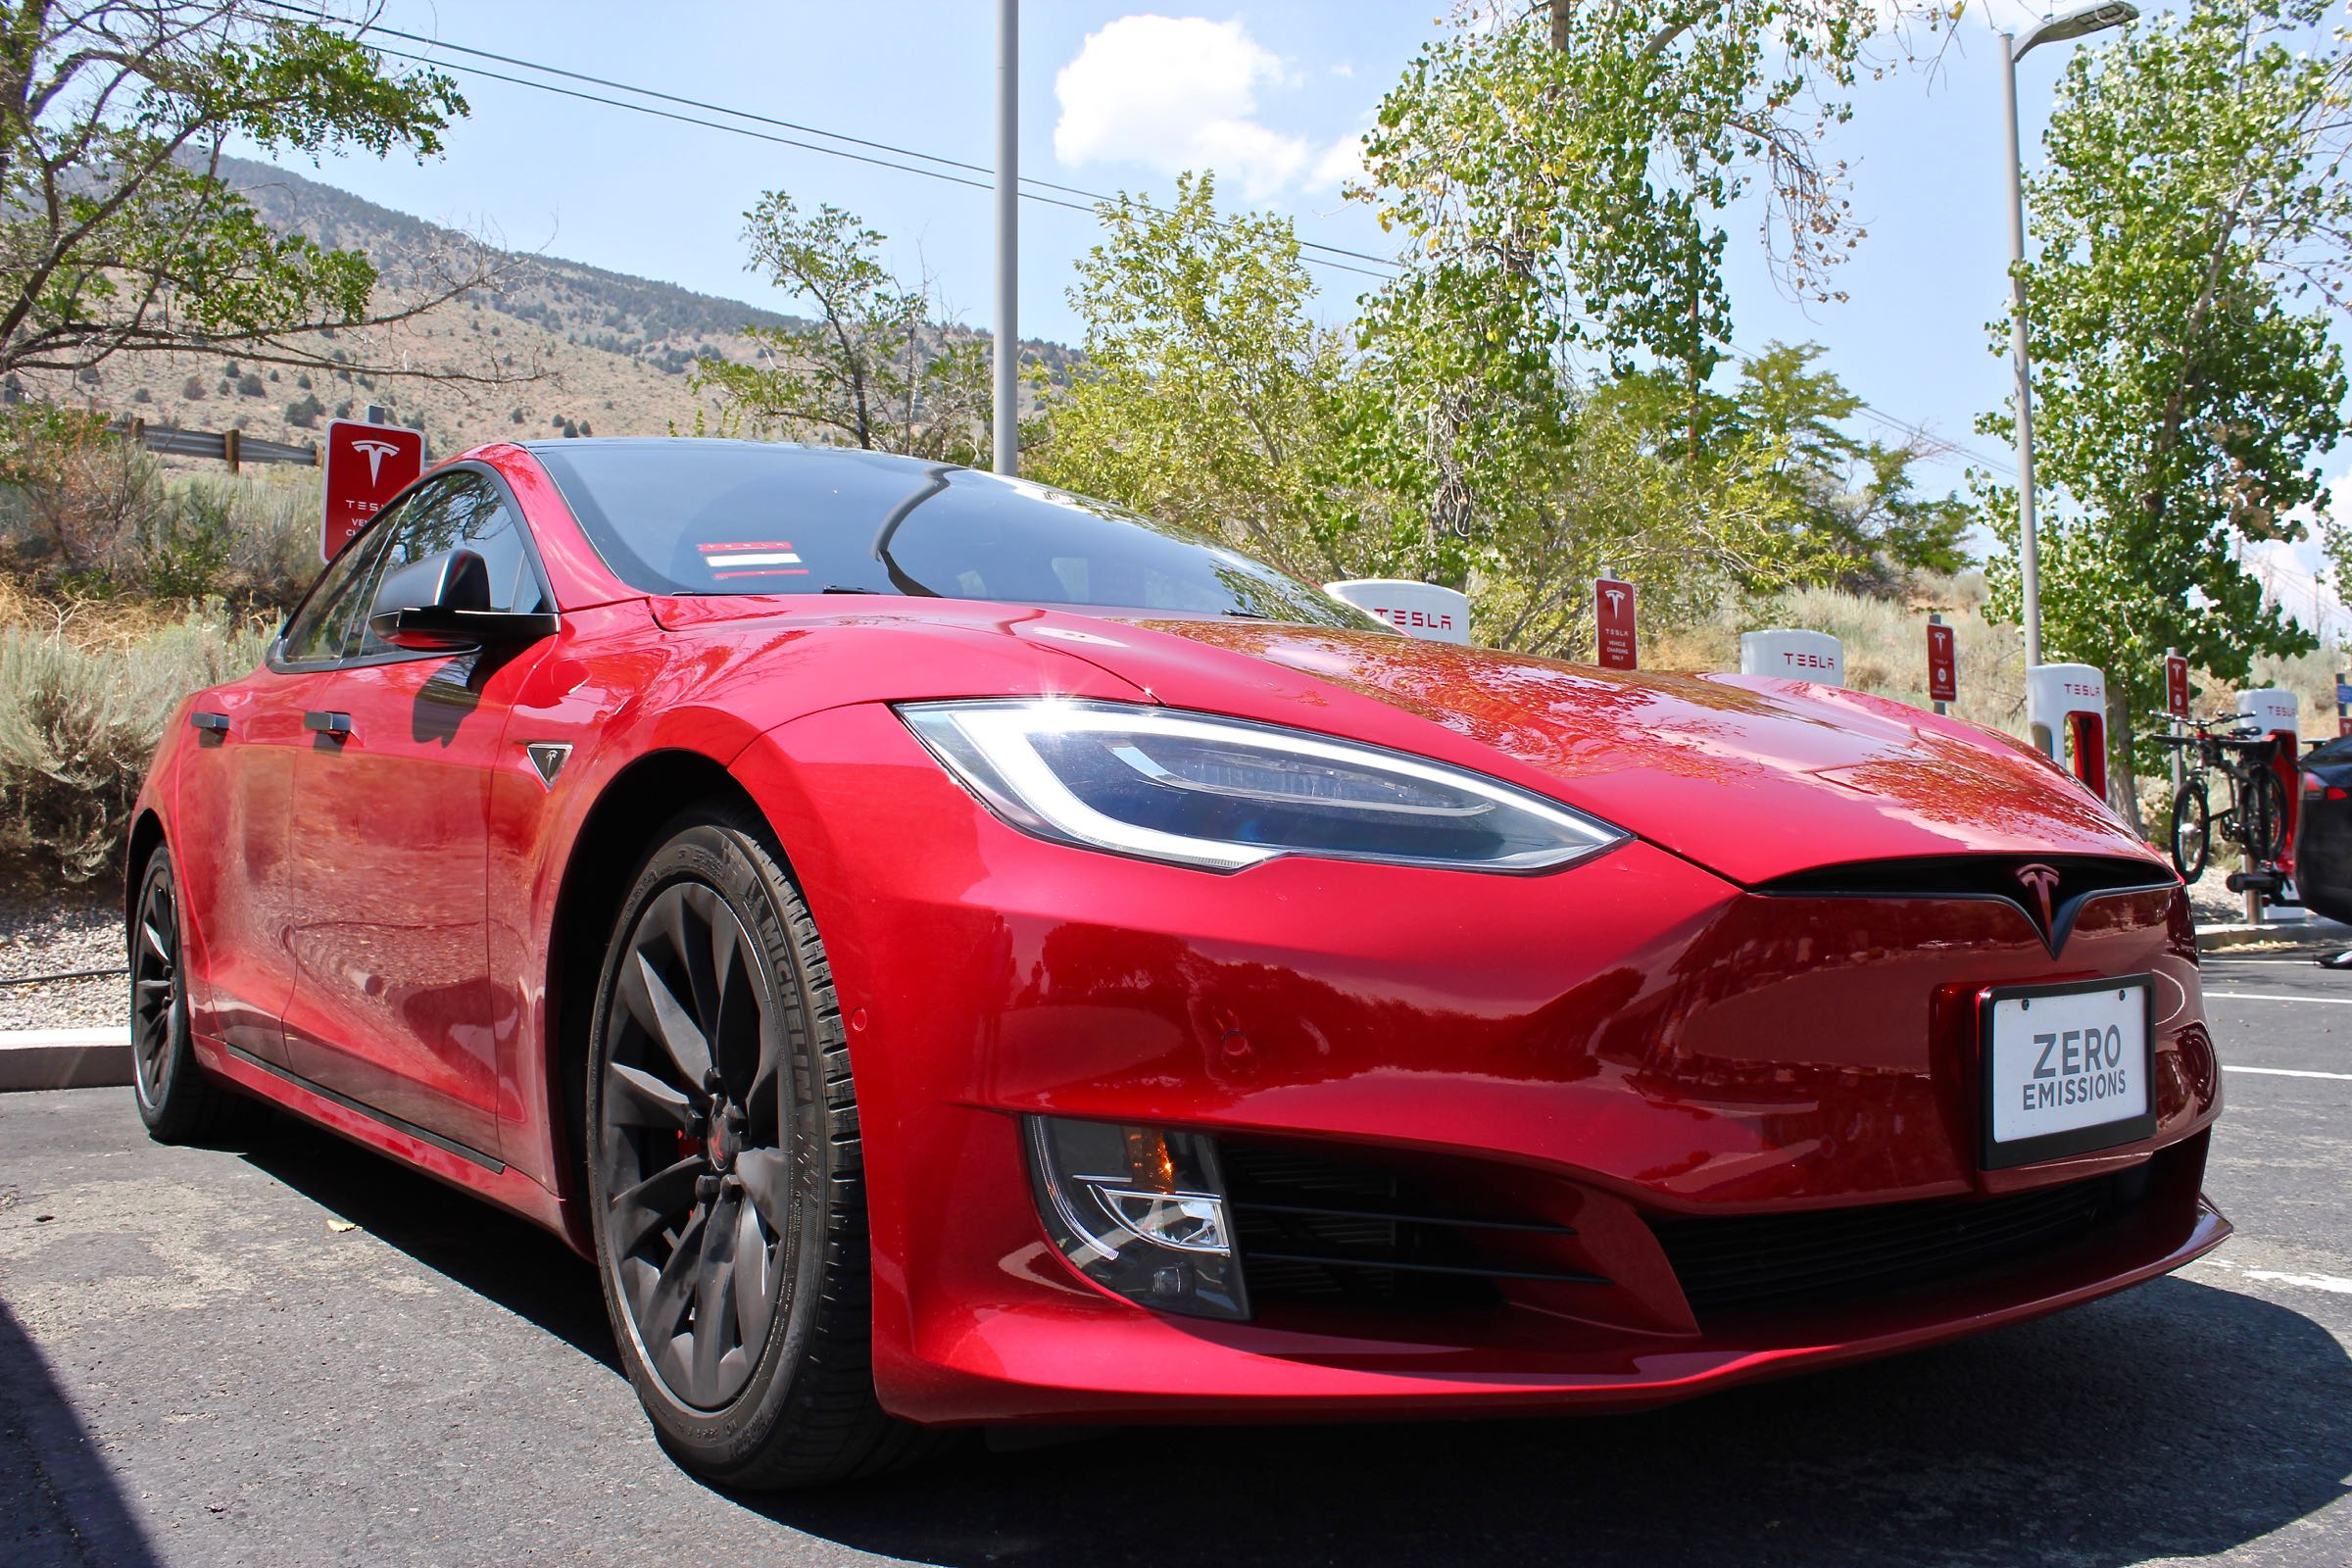 Rent A Tesla >> You Can Now Rent A Tesla Model S From Thrifty When Traveling To